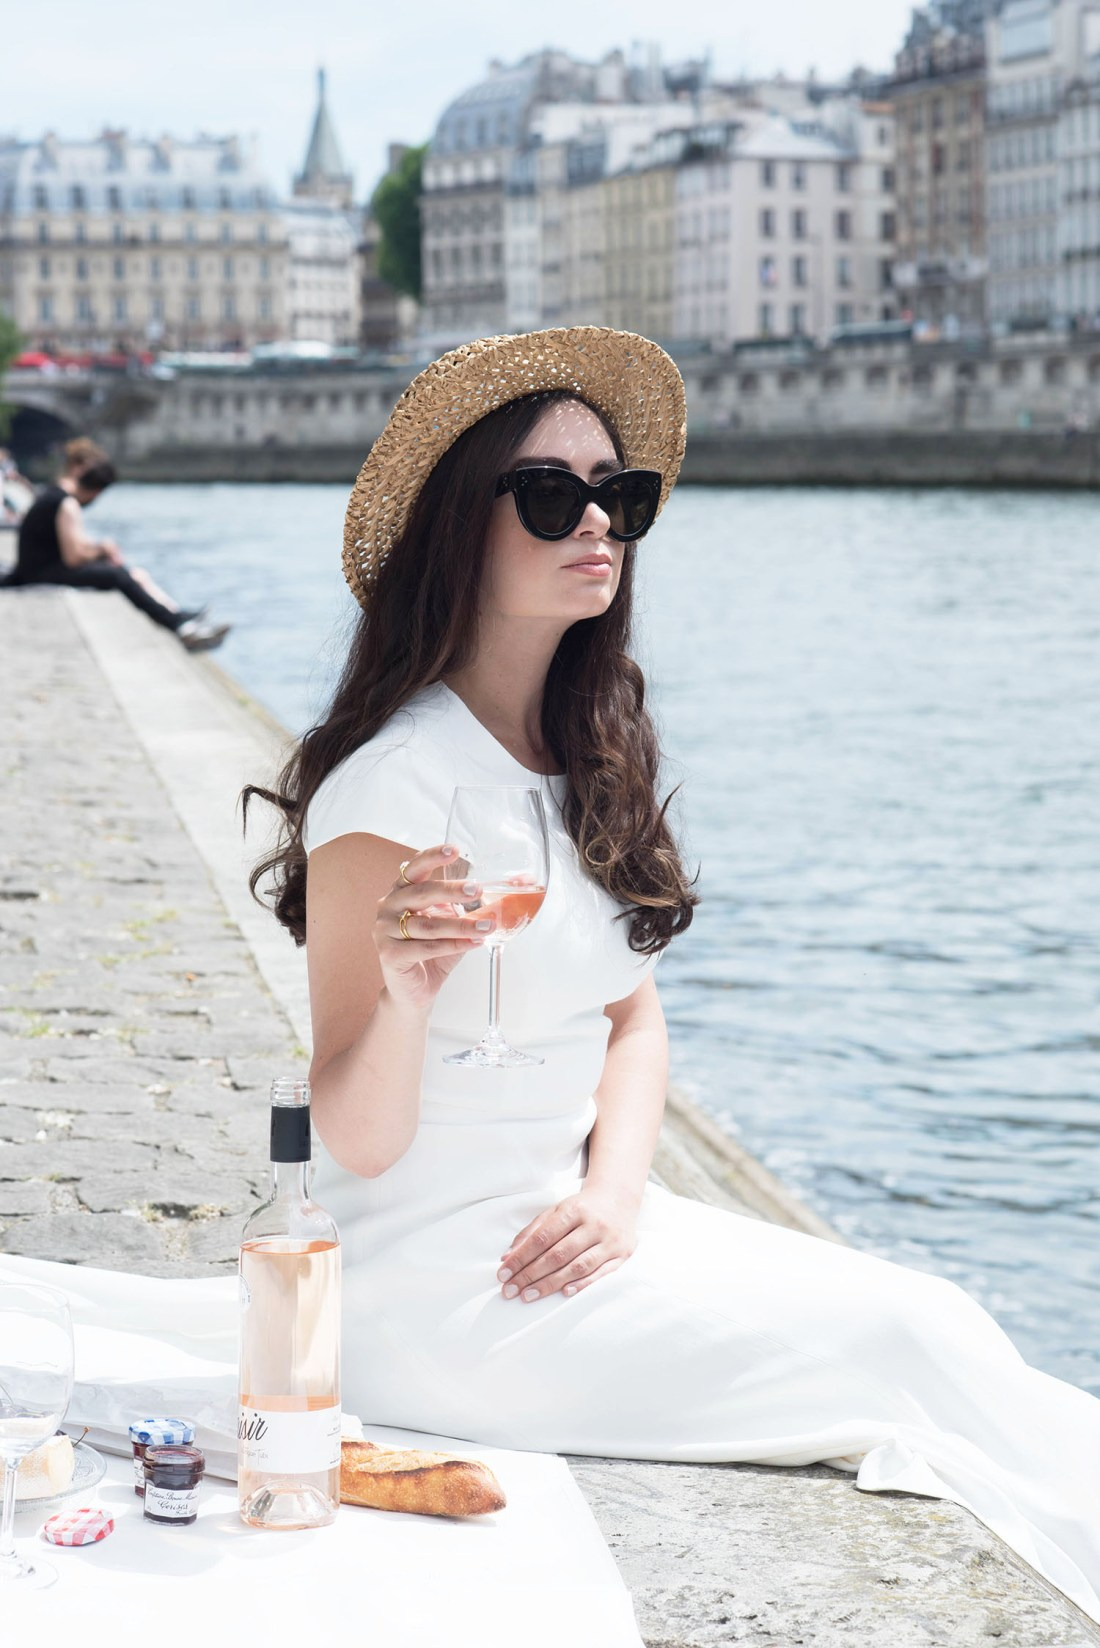 Style blogger Cee Fardoe of Coco & Vera sits on the banks of the Seine river in Paris wearing an Ivy & Oak white dress